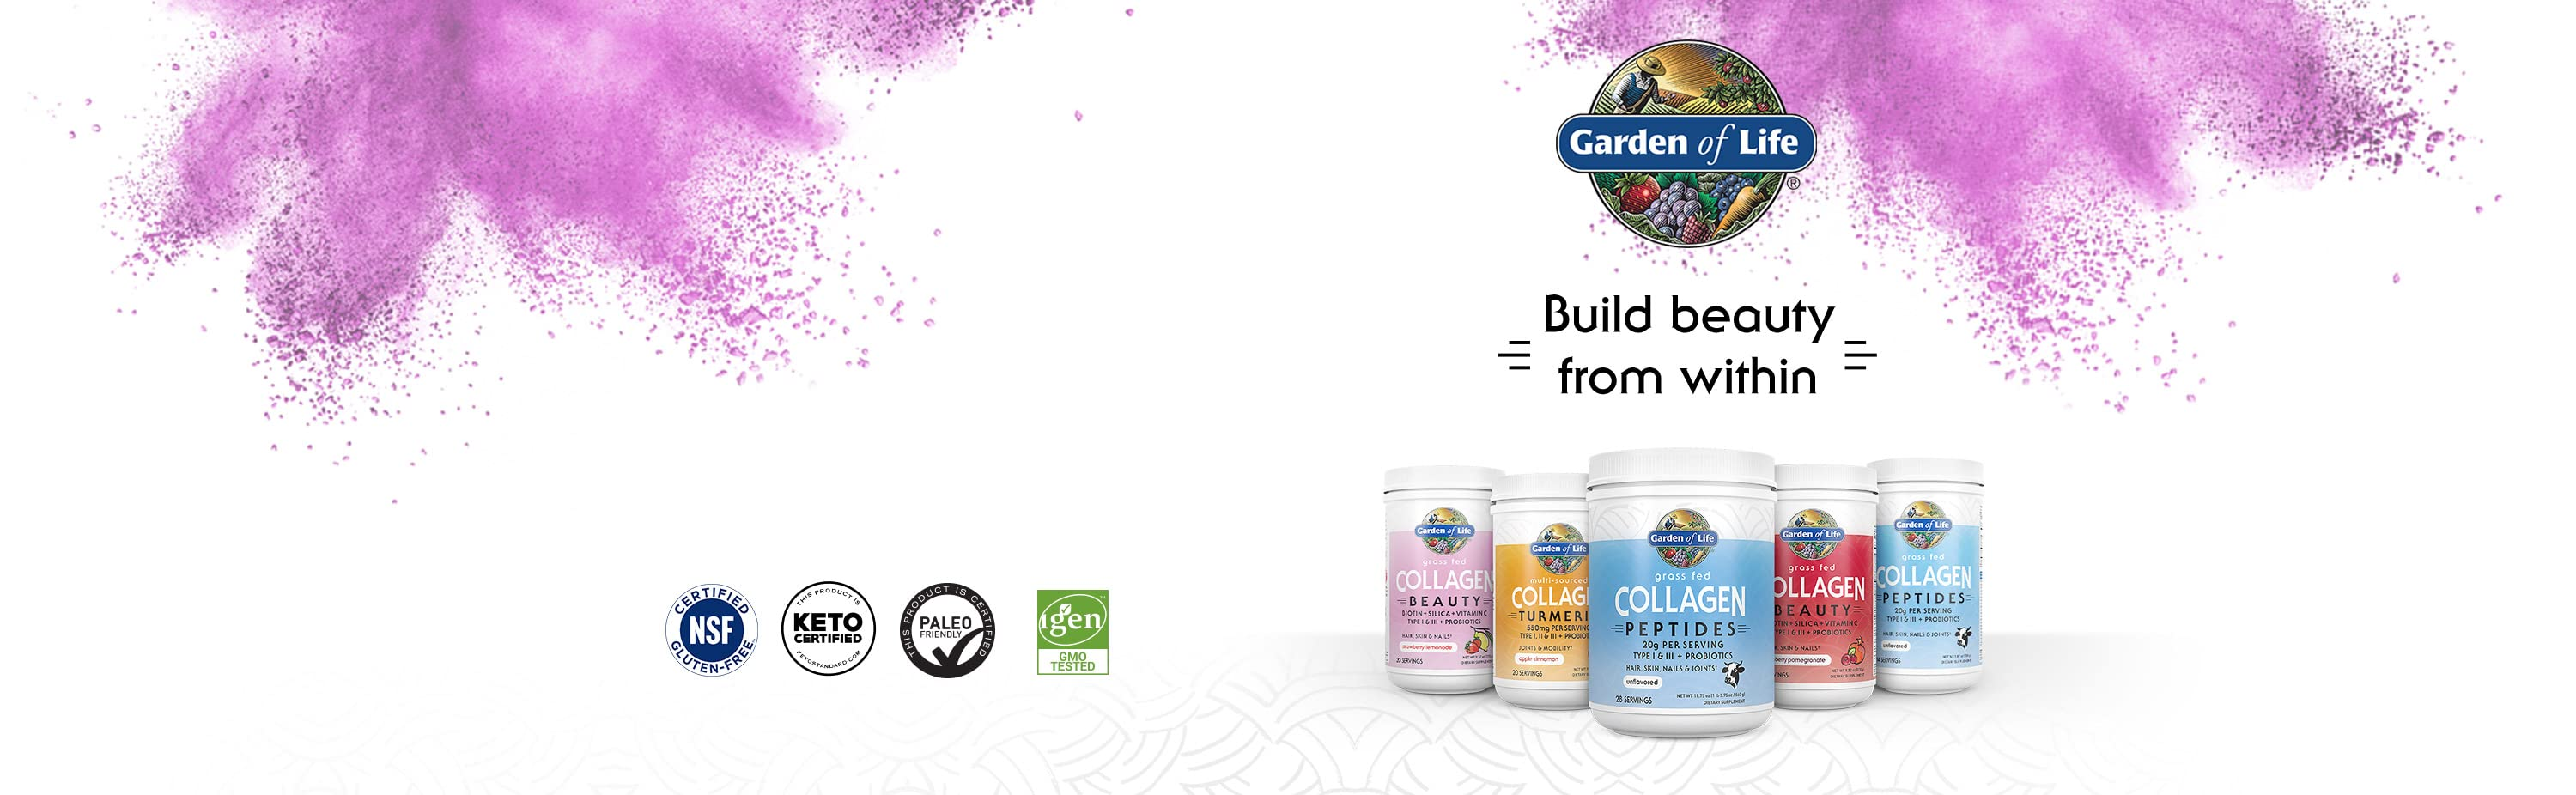 Garden of Life. Build beauty from within. NSF Certified Gluten-free. KETO Certified. PALEO Friendly. igen GMO tested.